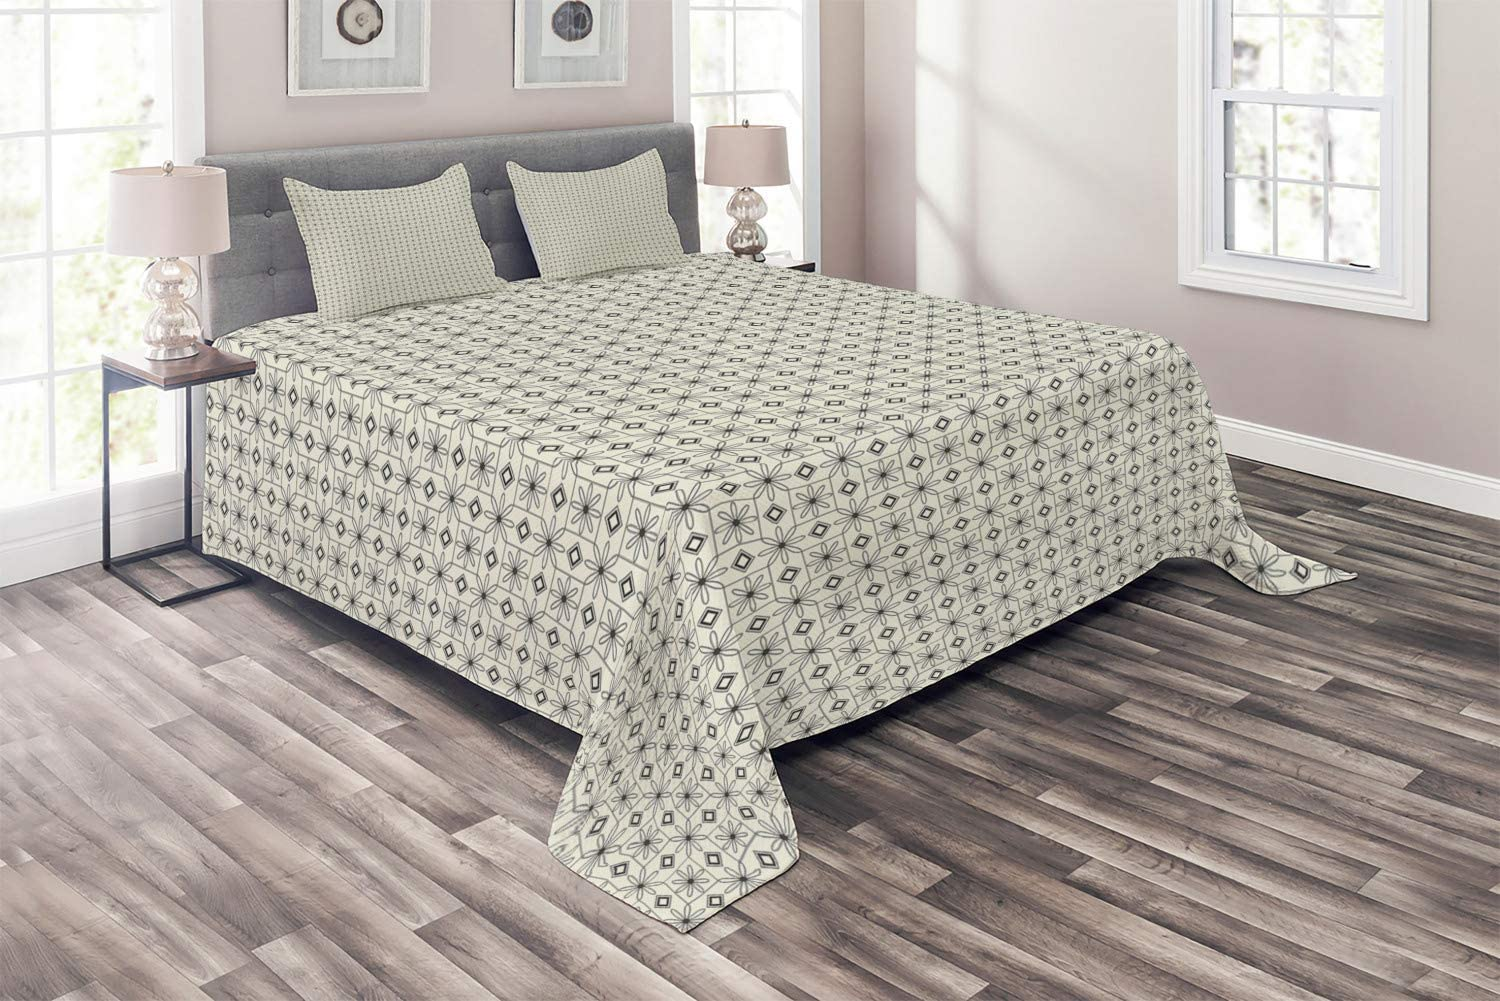 Ambesonne Mosaic Coverlet Flower Petals Fr Squared 5 popular in Geometric Popular products